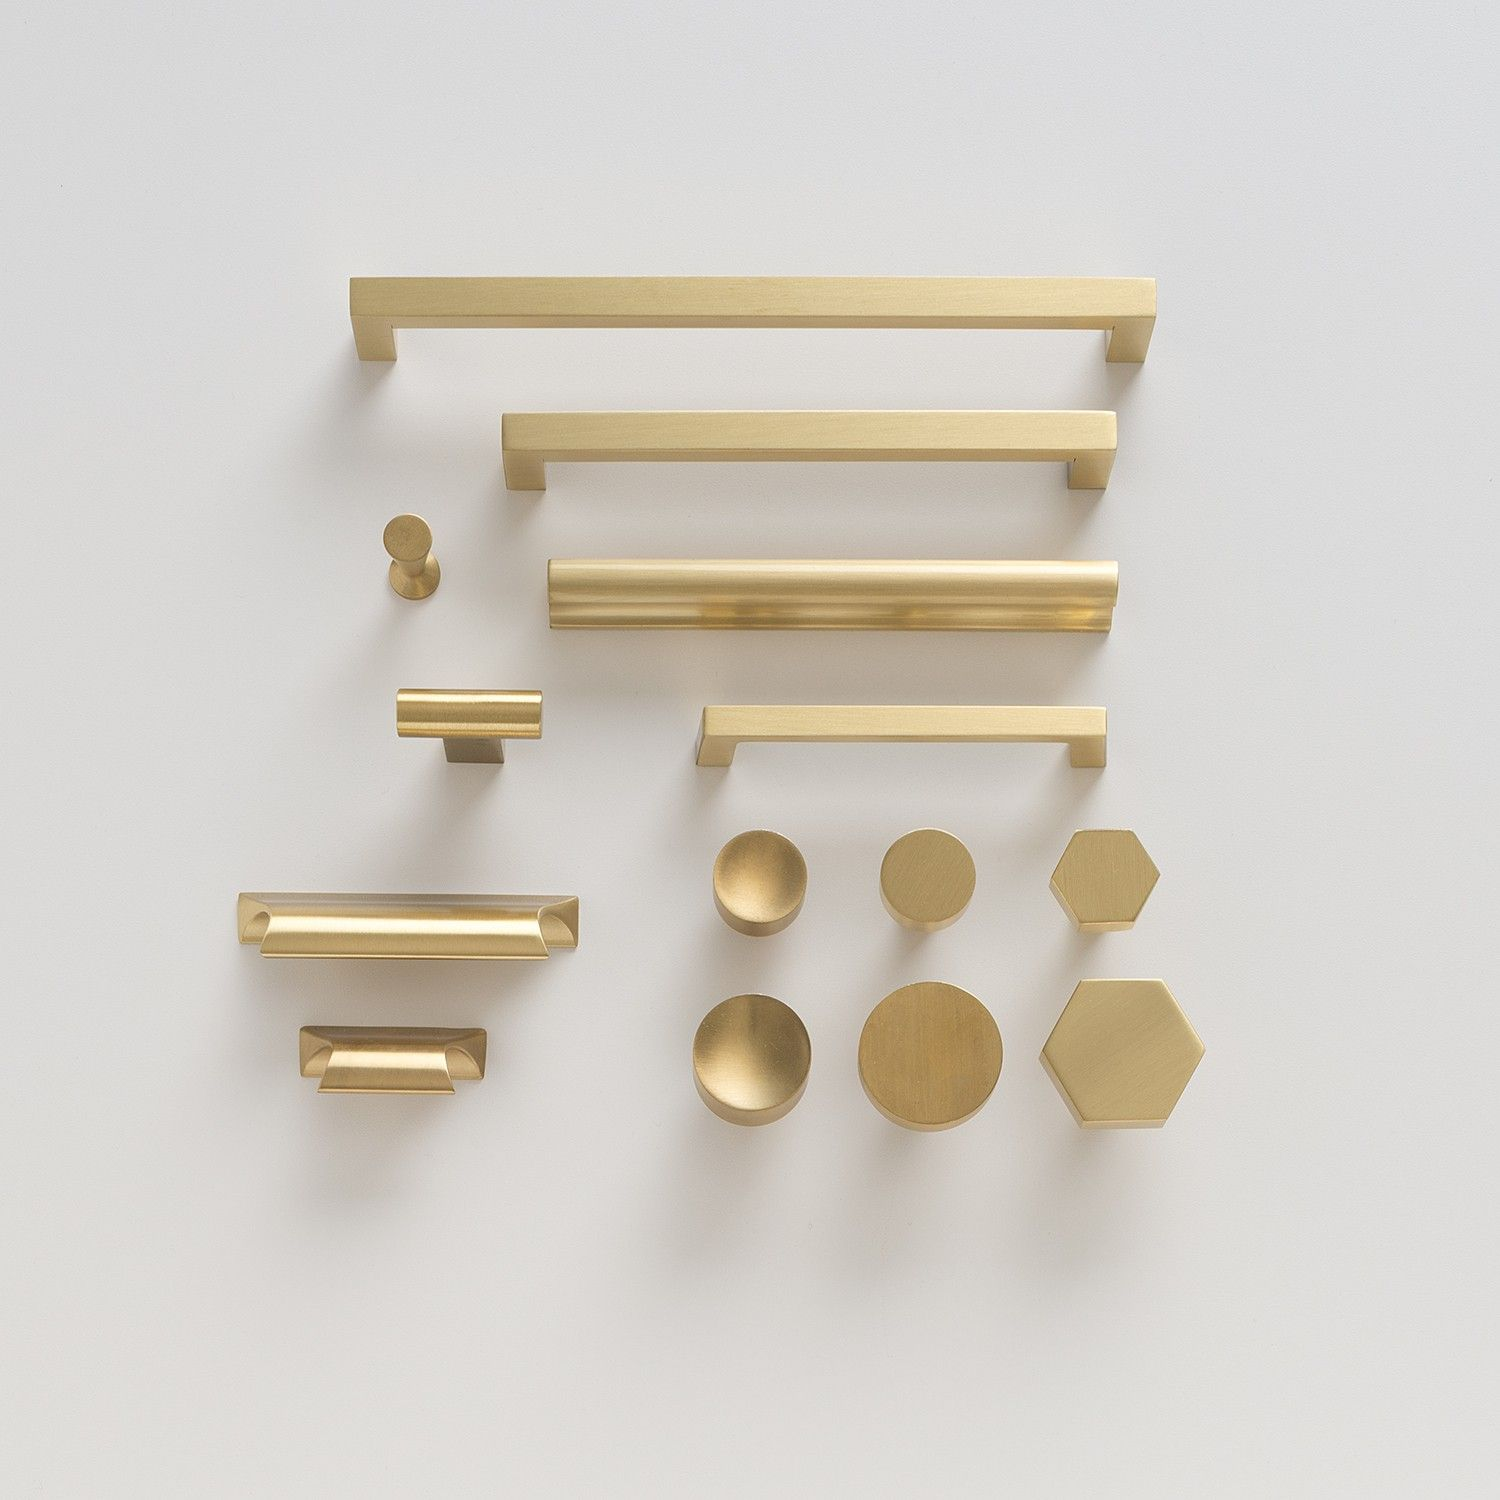 Satin Brass Cabinet Pulls Greenwood Pull Natural Brass Brass Drawer Pulls Copper And